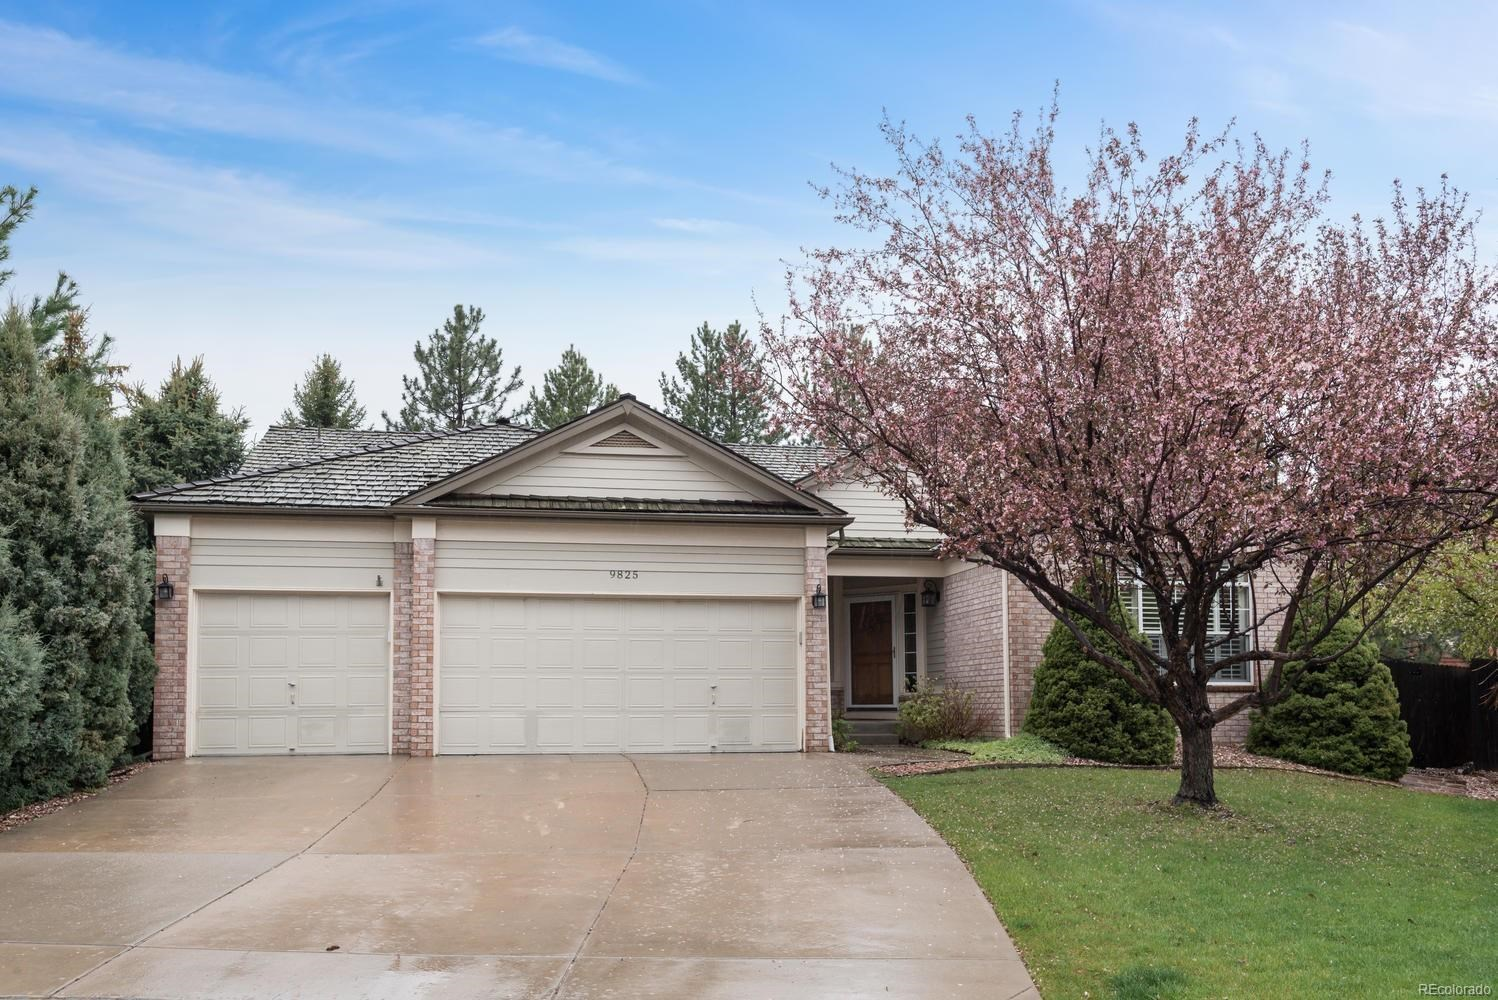 MLS# 4337995 - 1 - 9825 Cypress Point Circle, Lone Tree, CO 80124